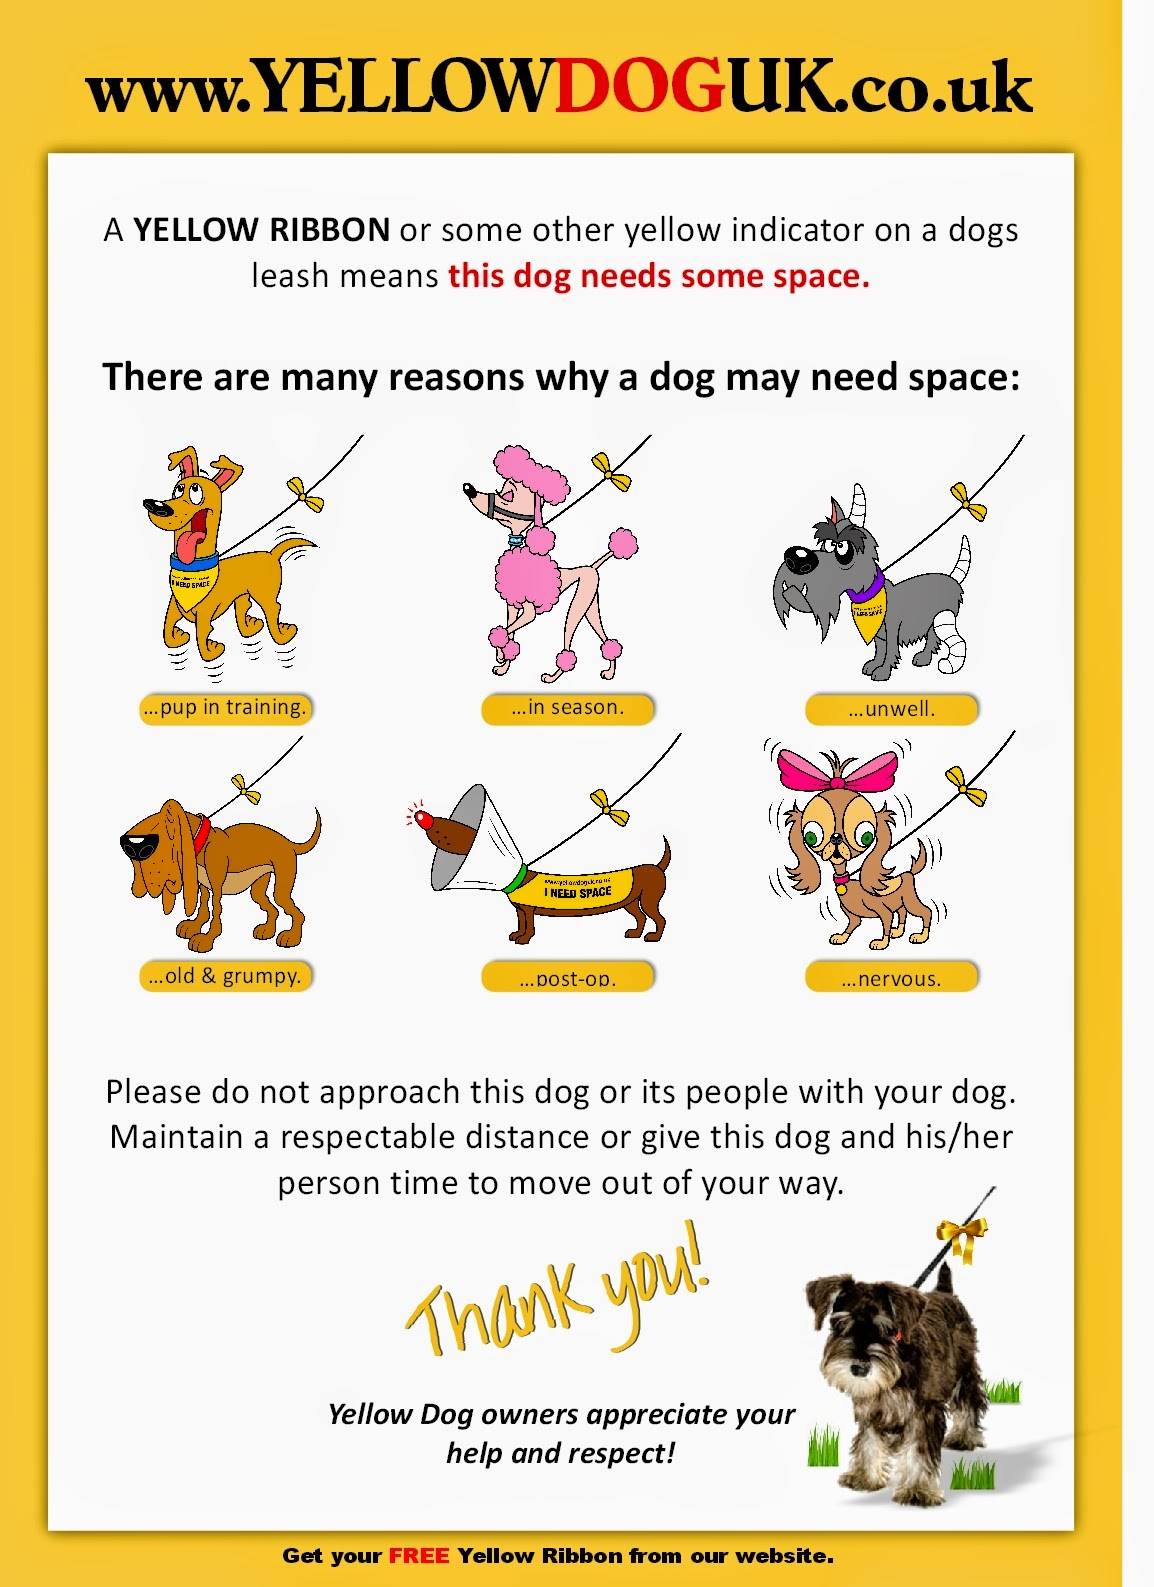 Yellow Dog Campaign